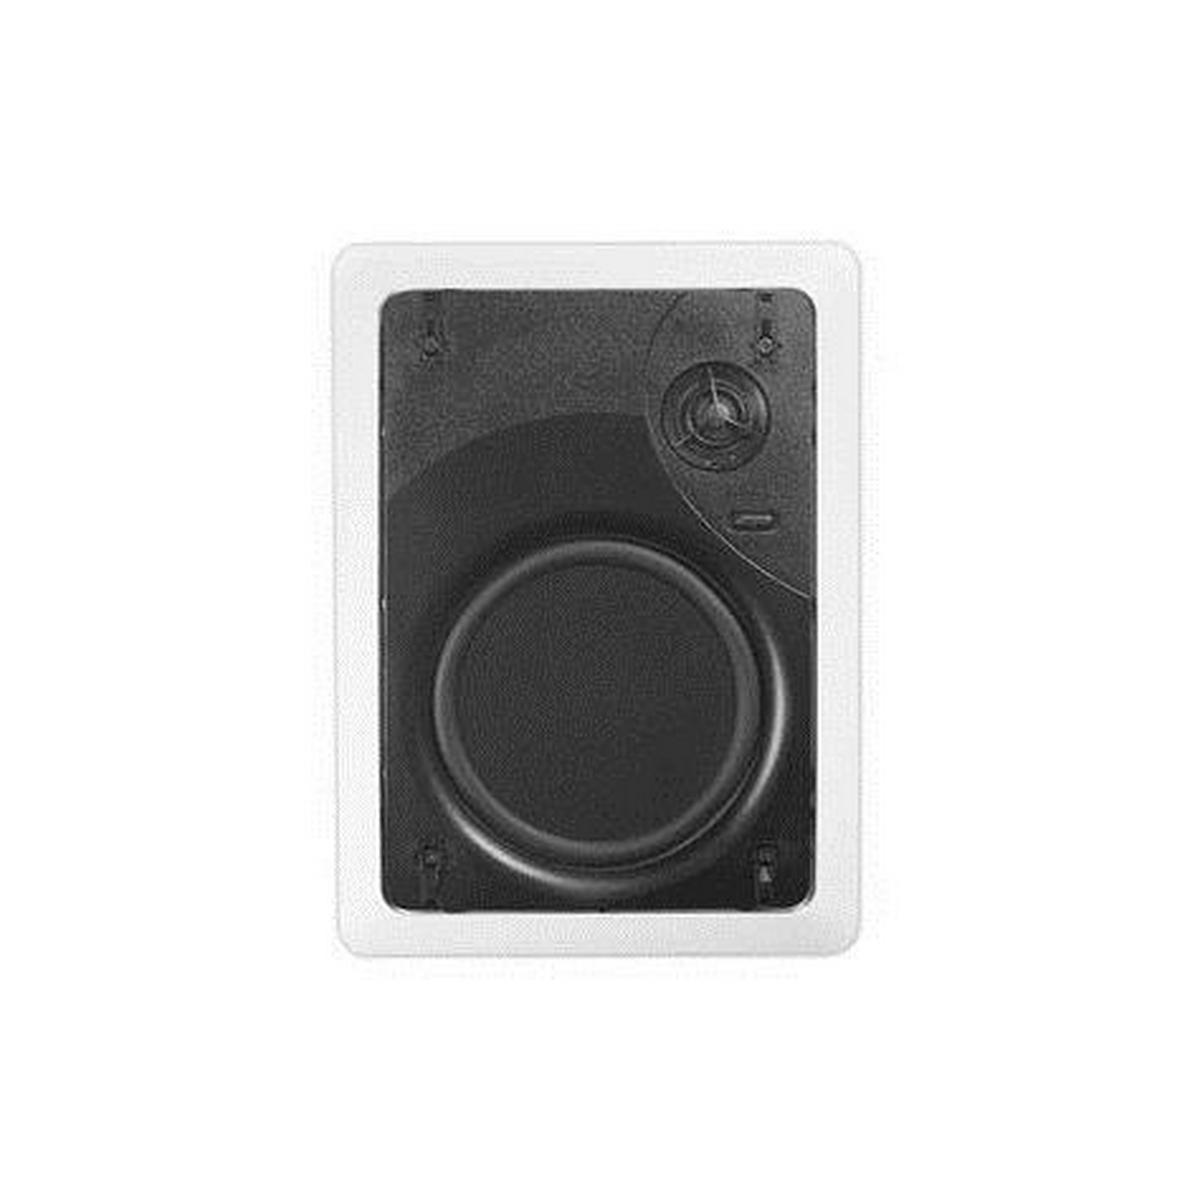 PhaseTech  CI60 VIII QM in-wall surround speaker with mounting kit included.